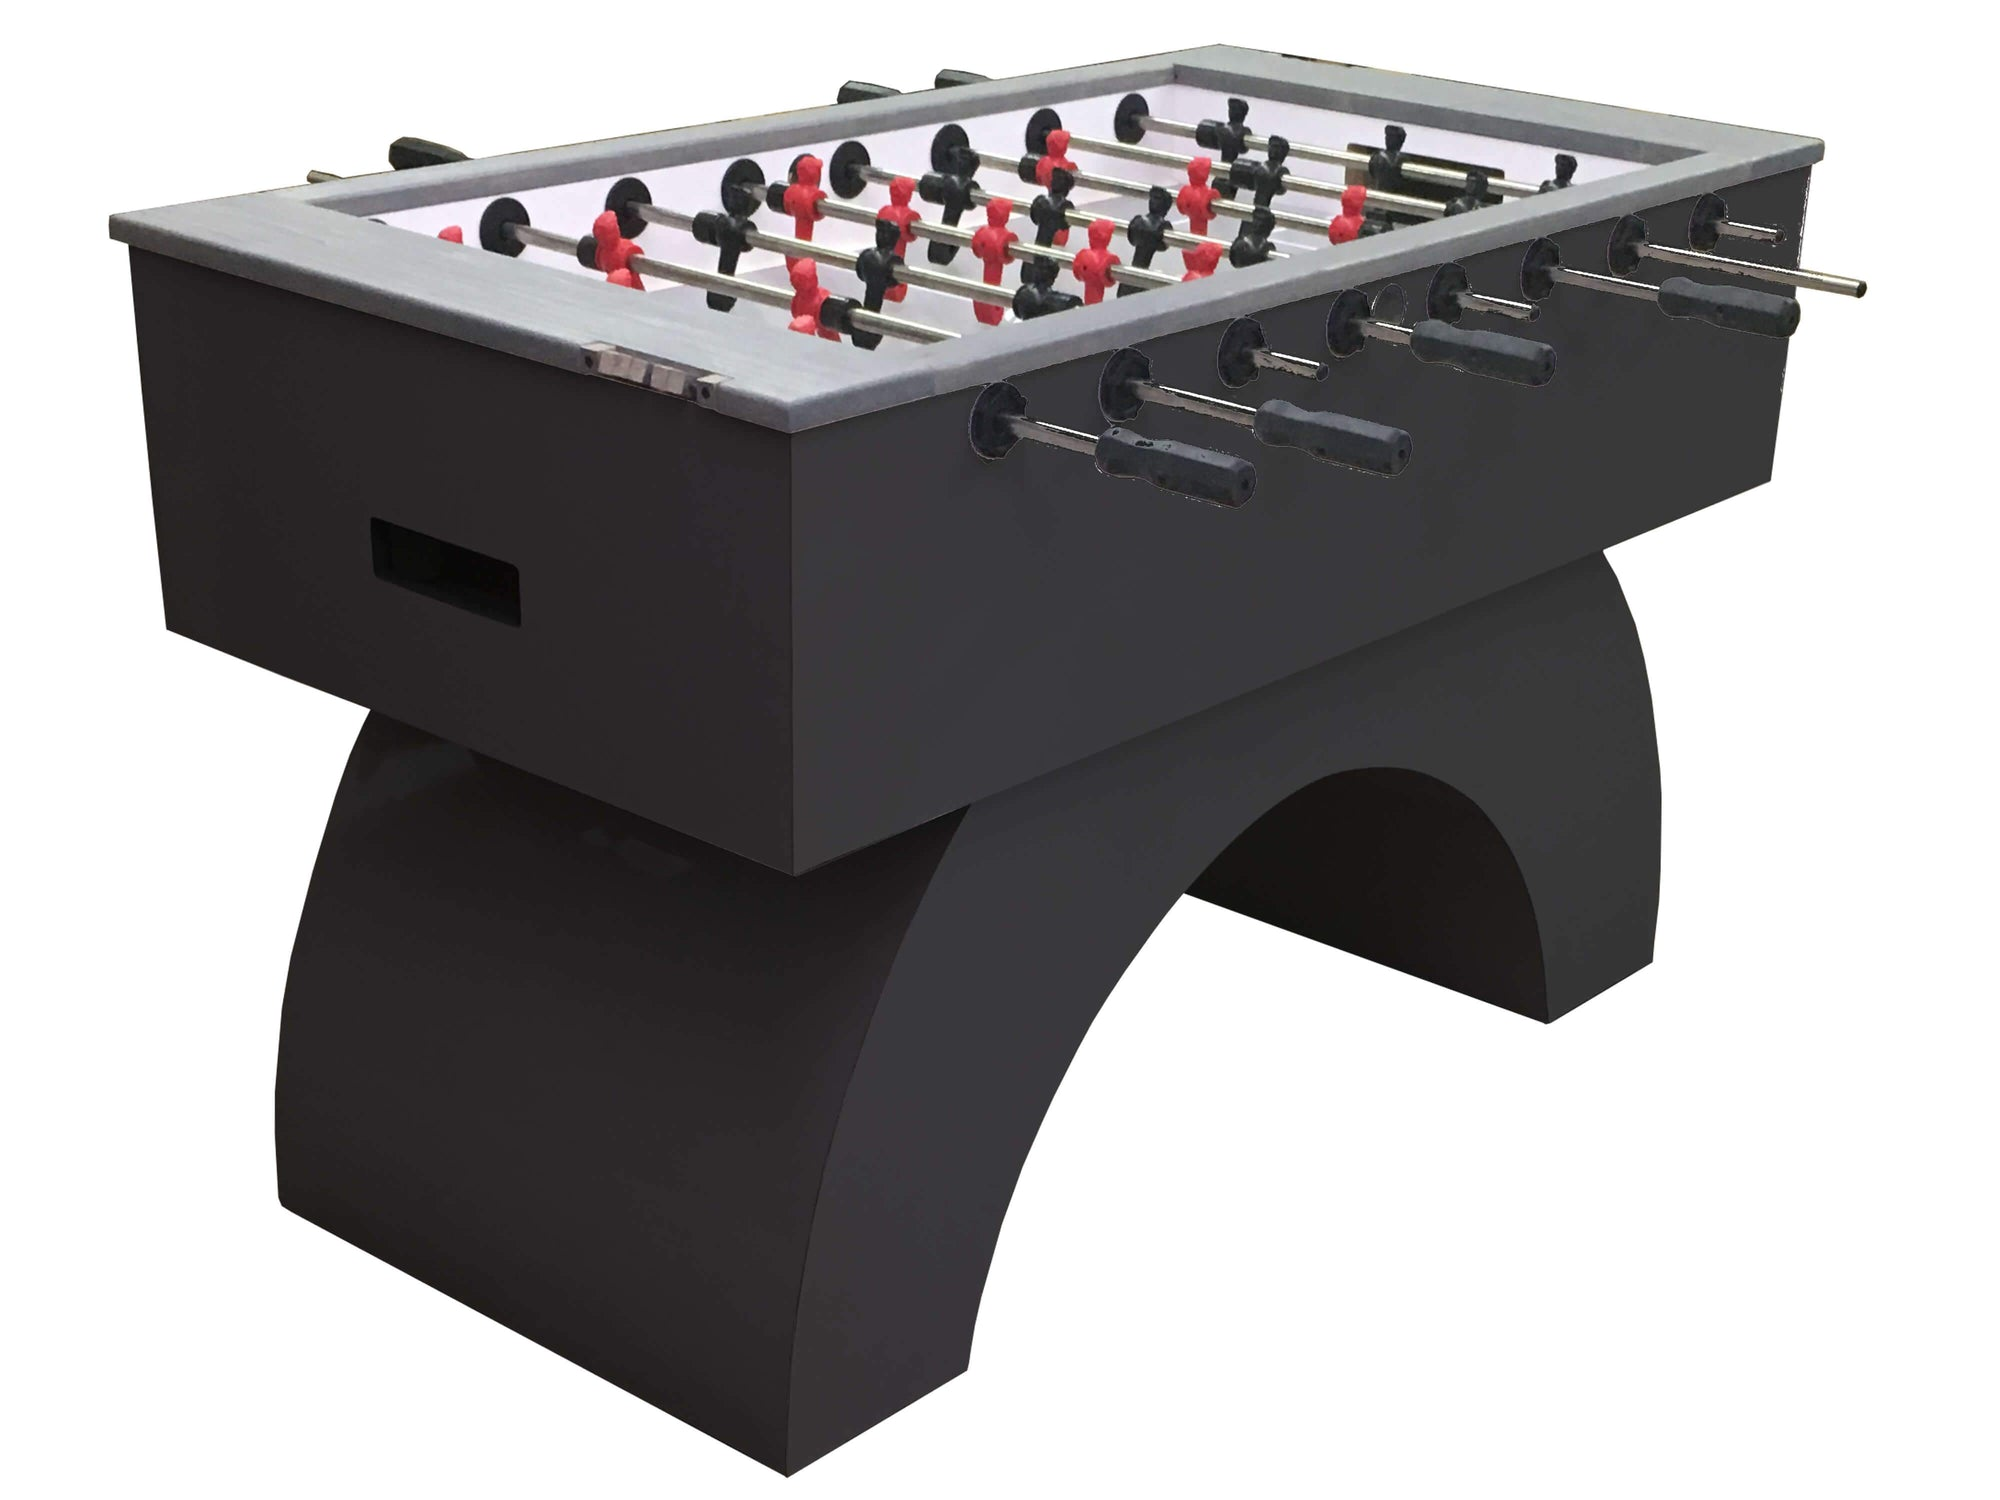 "Performance Games Sure Shot RS Curved Legs Foosball Table 56"" - Gaming Blaze"